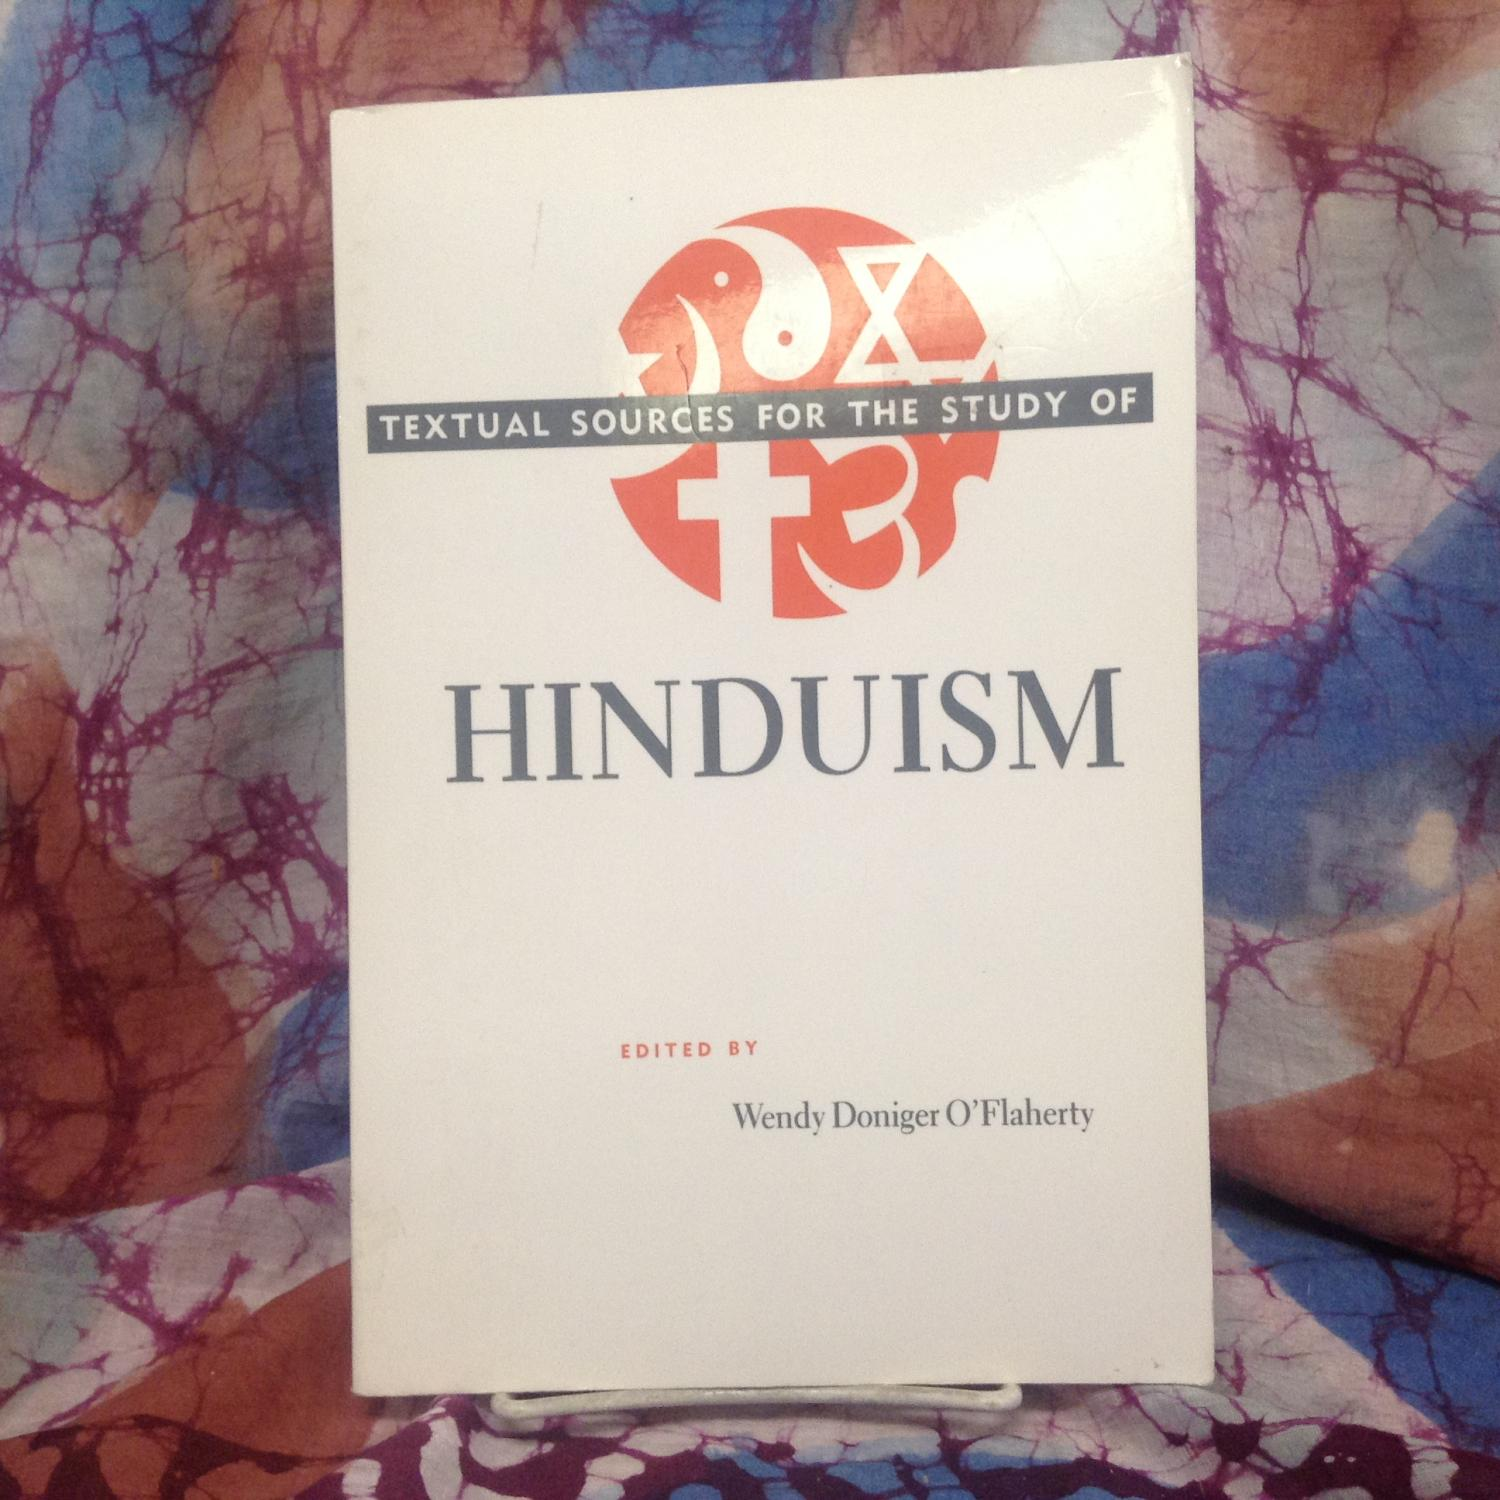 Textual Sources for the Study of Hinduism (Textual Sources for the Study of Religion) - O'Flaherty, Wendy Doniger